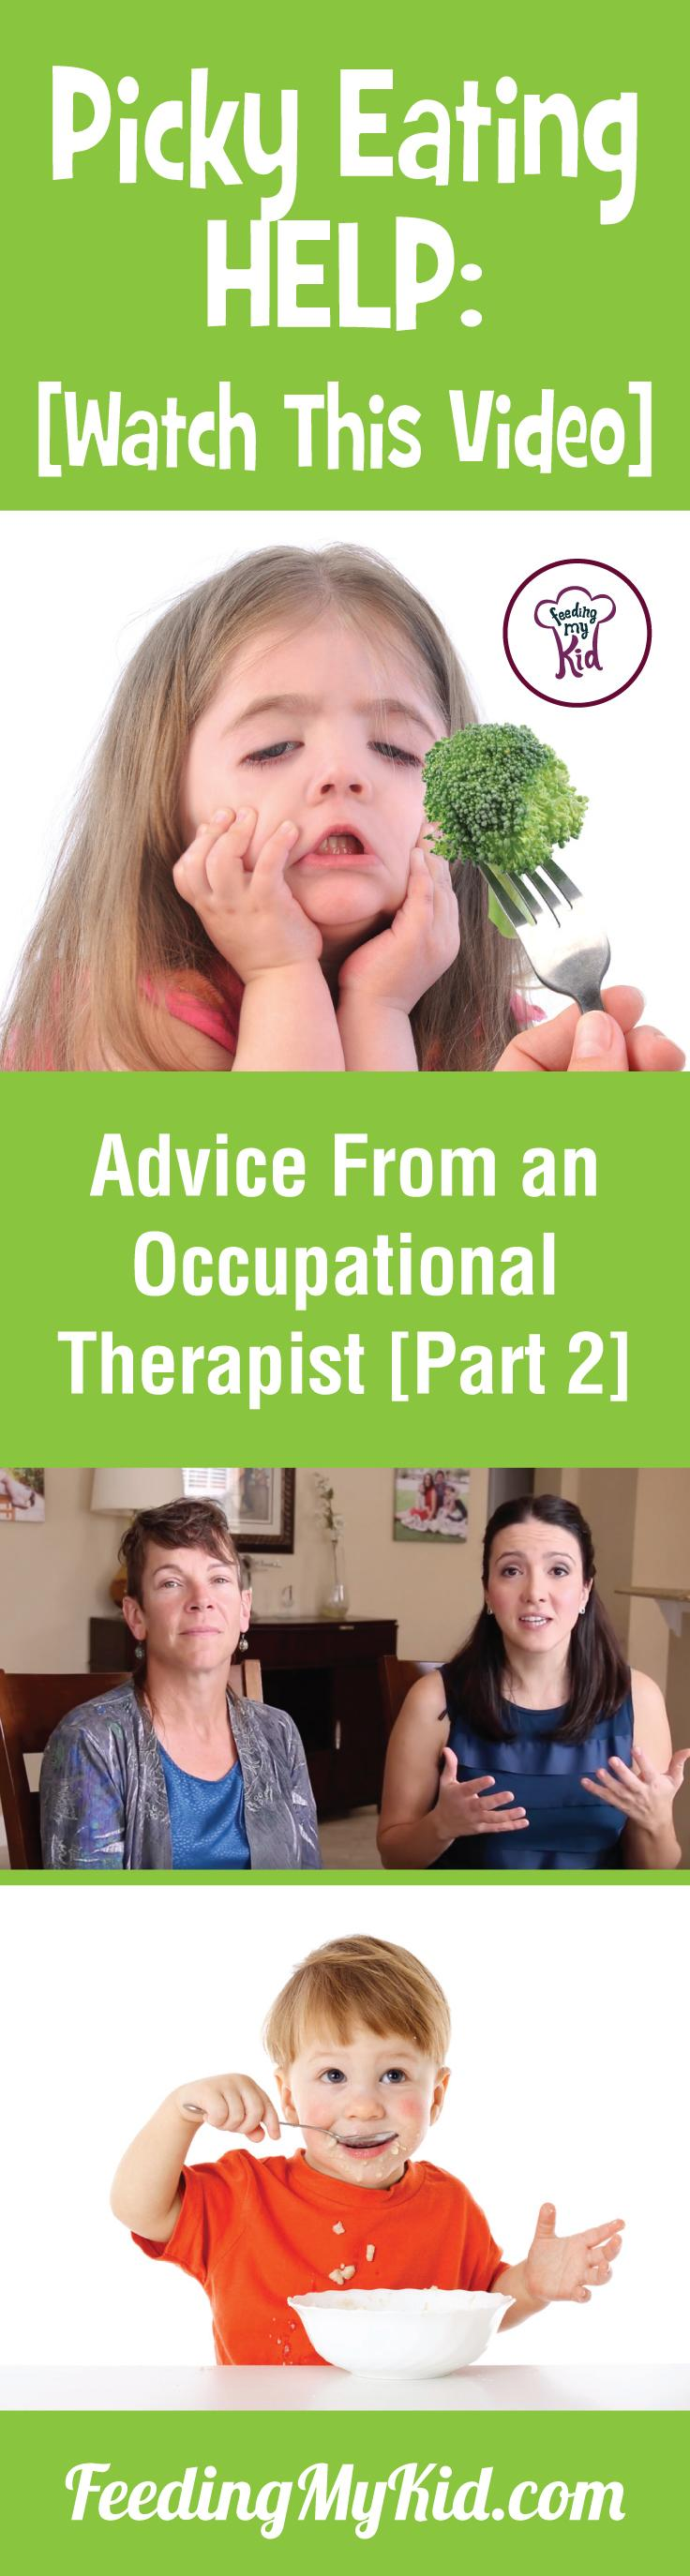 A conversation with an occupational therapist. Learn everything you need to know about occupational therapy for children. Feeding My Kid is a filled with all the information you need about how to raise your kids, from healthy tips to nutritious recipes. #FeedingMyKid #OccupationalTherapist #advice #kidshealth